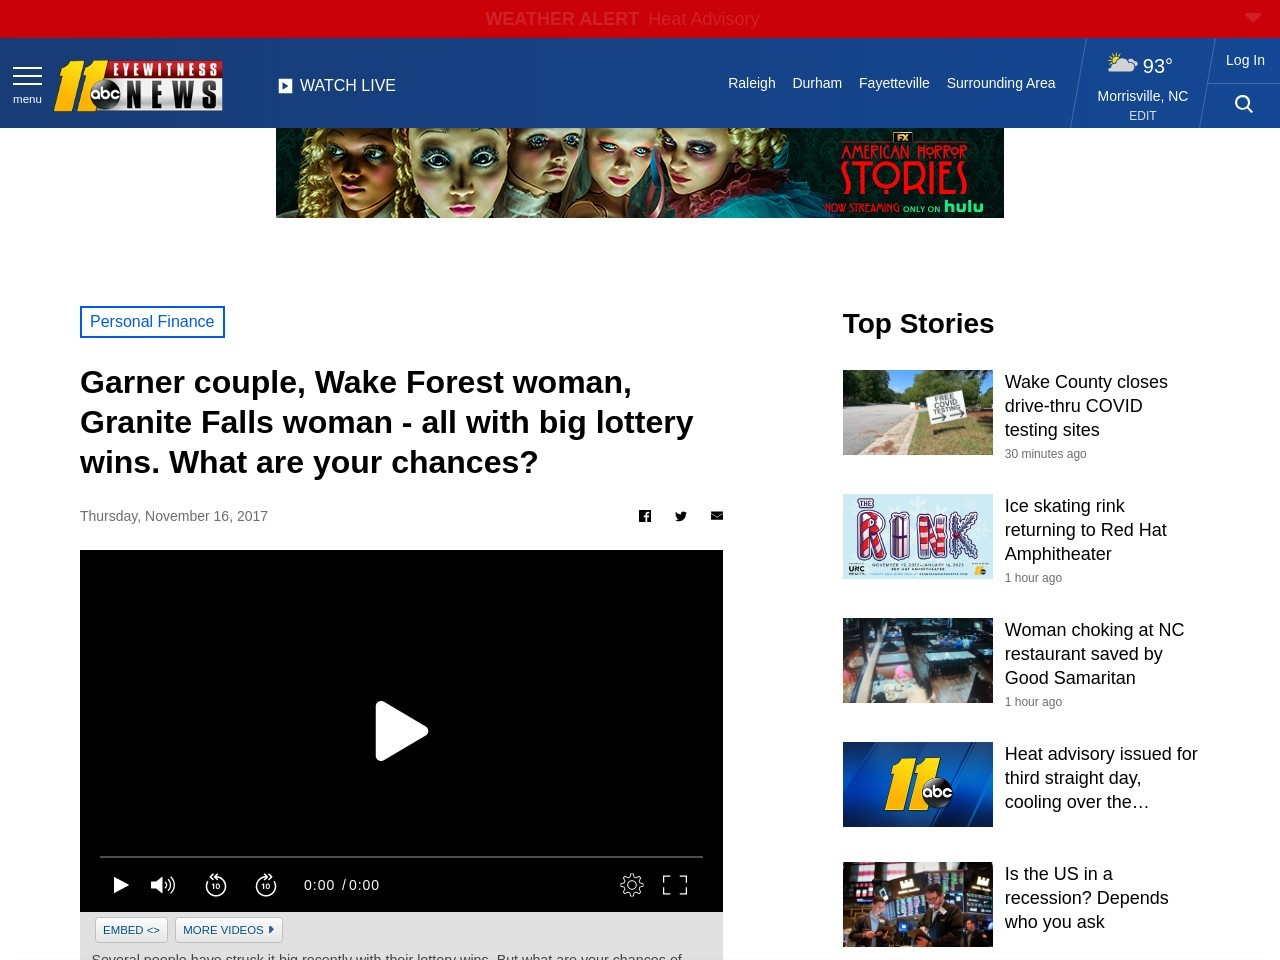 Garner couple, Wake Forest woman, Granite Falls woman – all with big lottery wins. What are your chances?